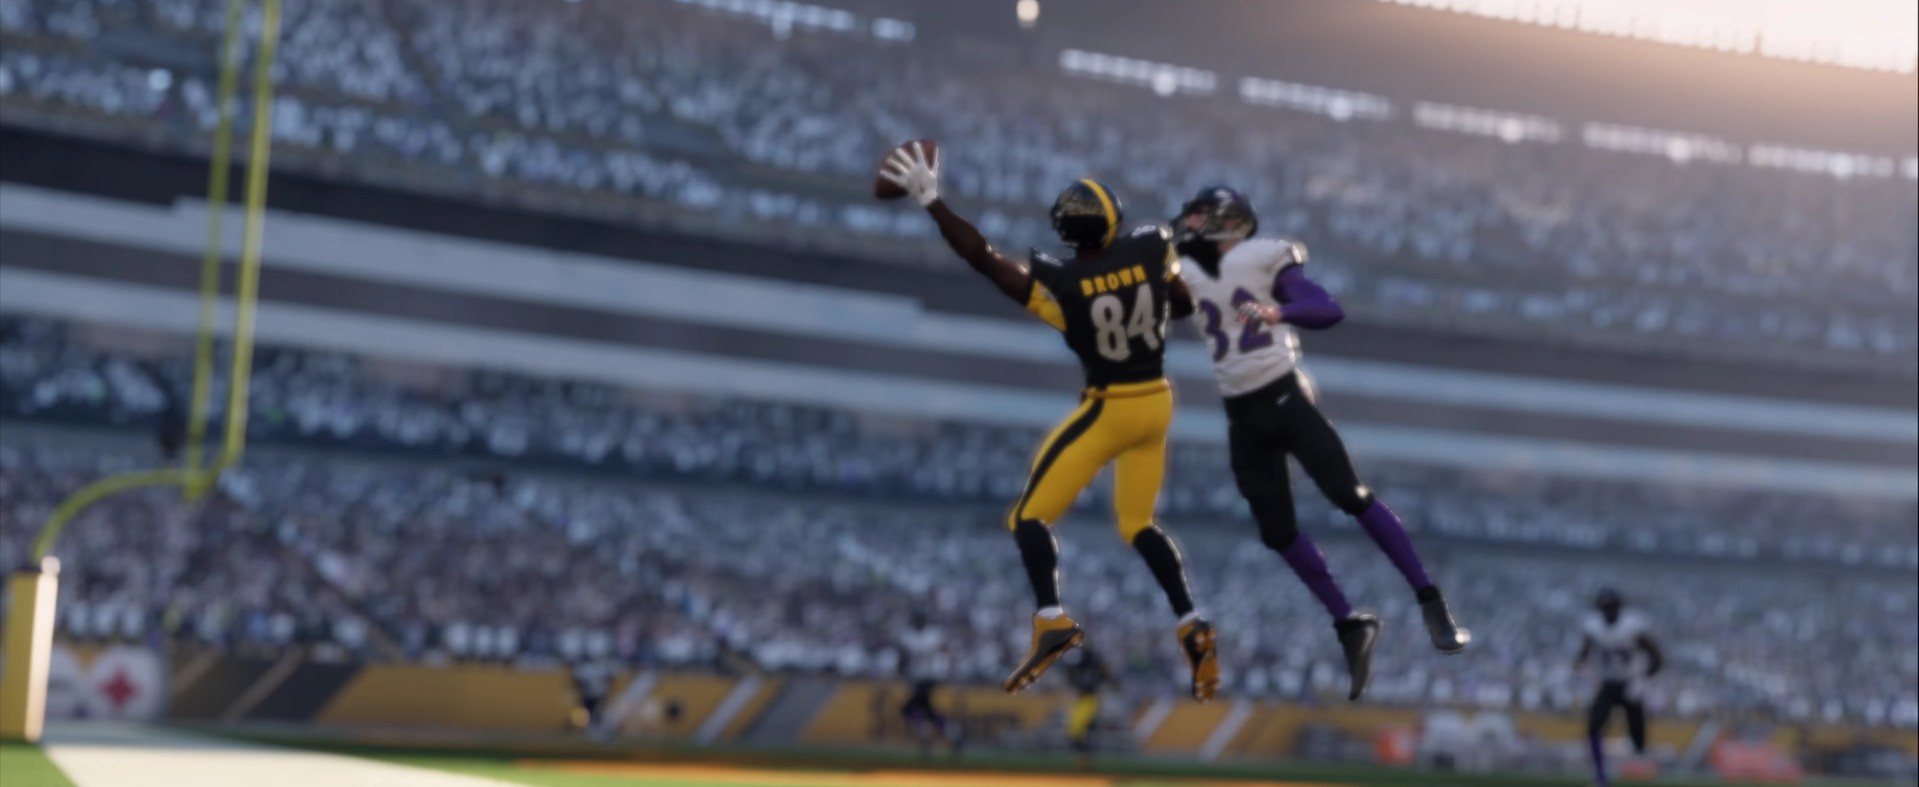 Madden 18 Tips Guide - Offensive and Defensive Money Plays ...